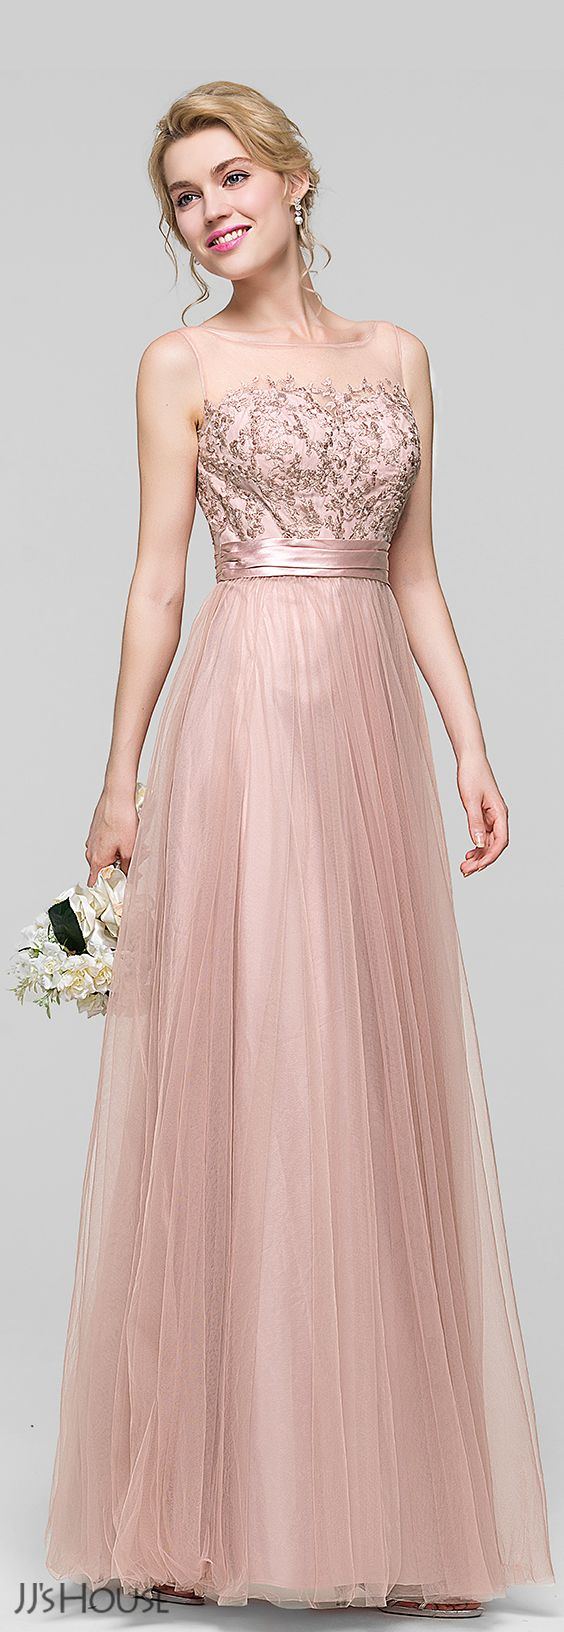 A-Line/Princess Scoop Neck Floor-Length Tulle Bridesmaid Dress With ...